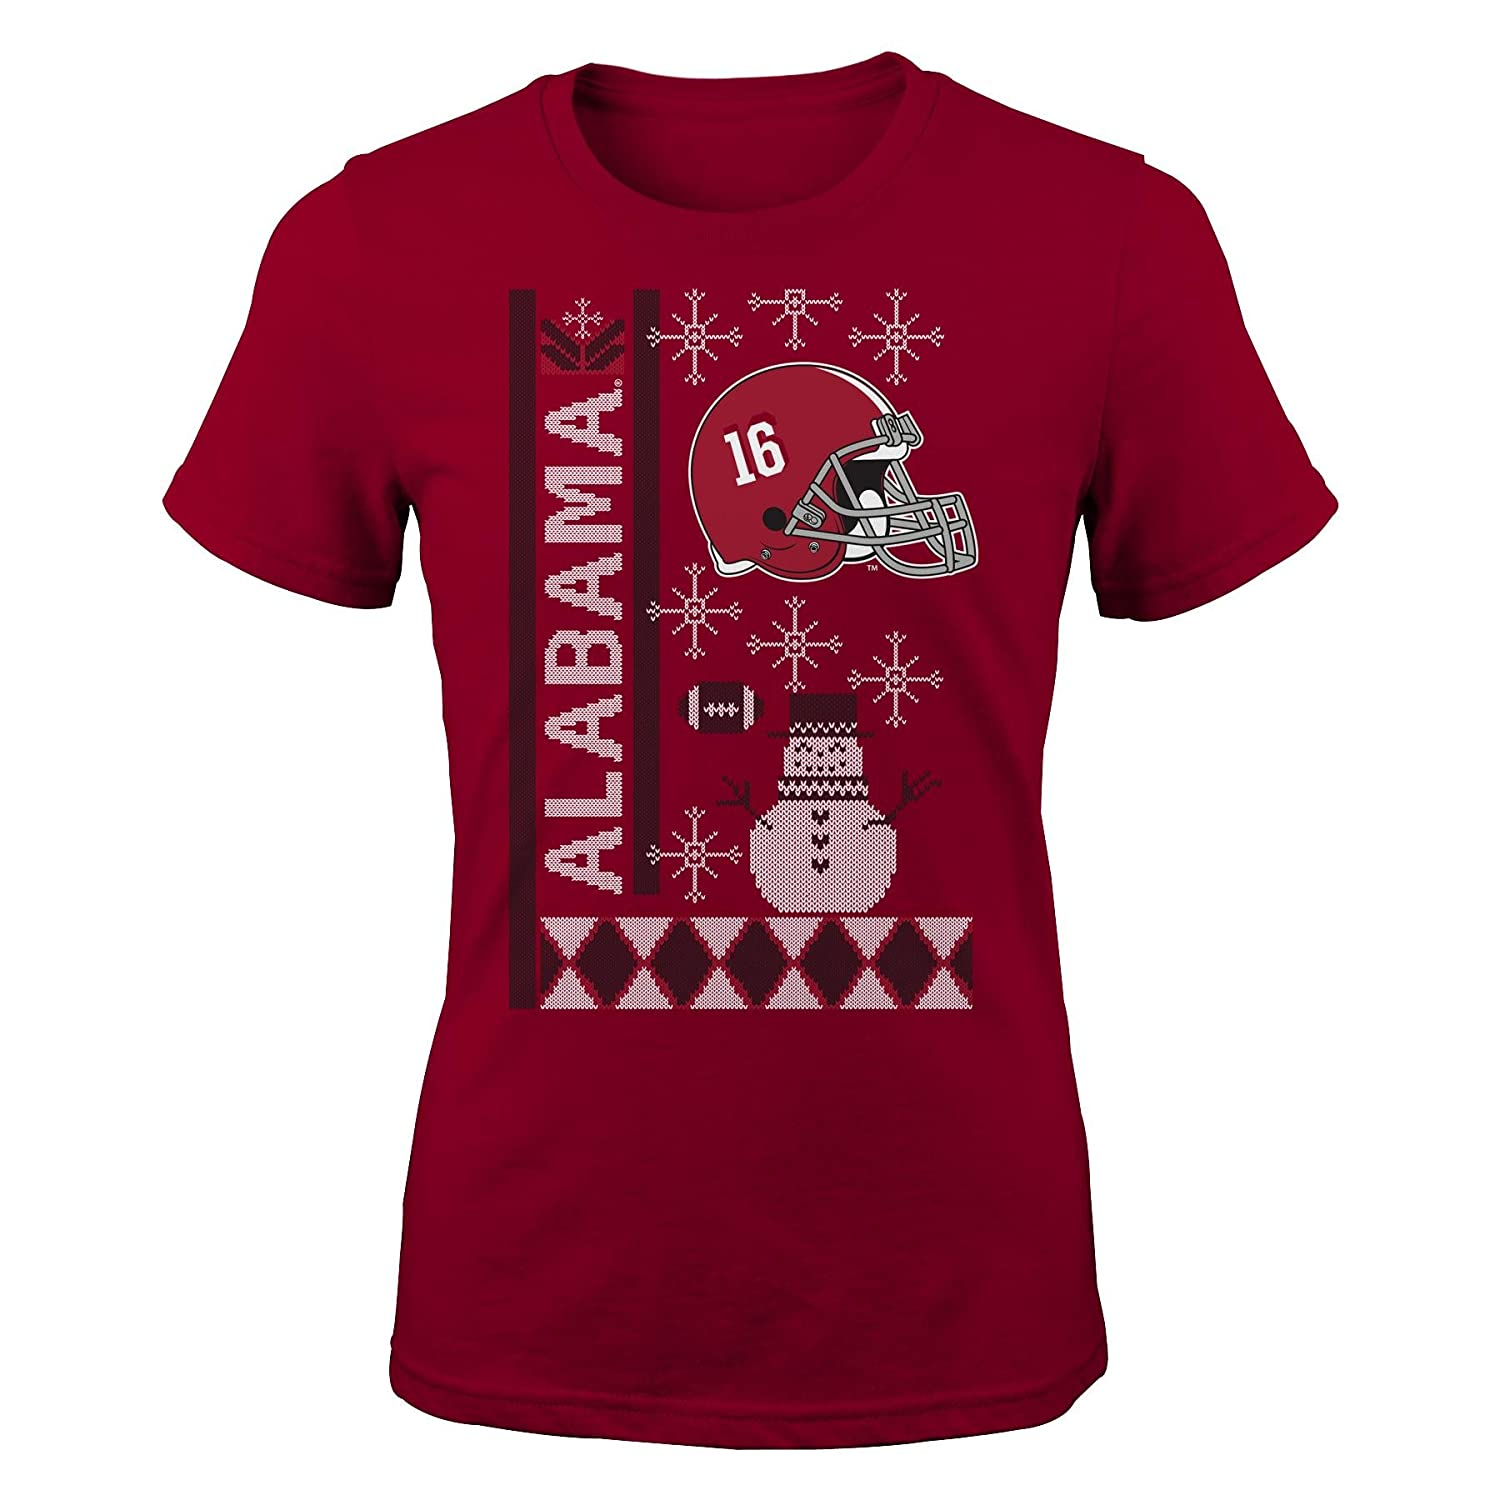 新しい到着 NCAA Large season半袖Tee Girls 7 – 16 B01MA26M31 Alabama tis the season半袖Tee Large Alabama Crimson Tide B01MA26M31, KOBEYA SPORTS WEB SHOP:c7d1d586 --- a0267596.xsph.ru